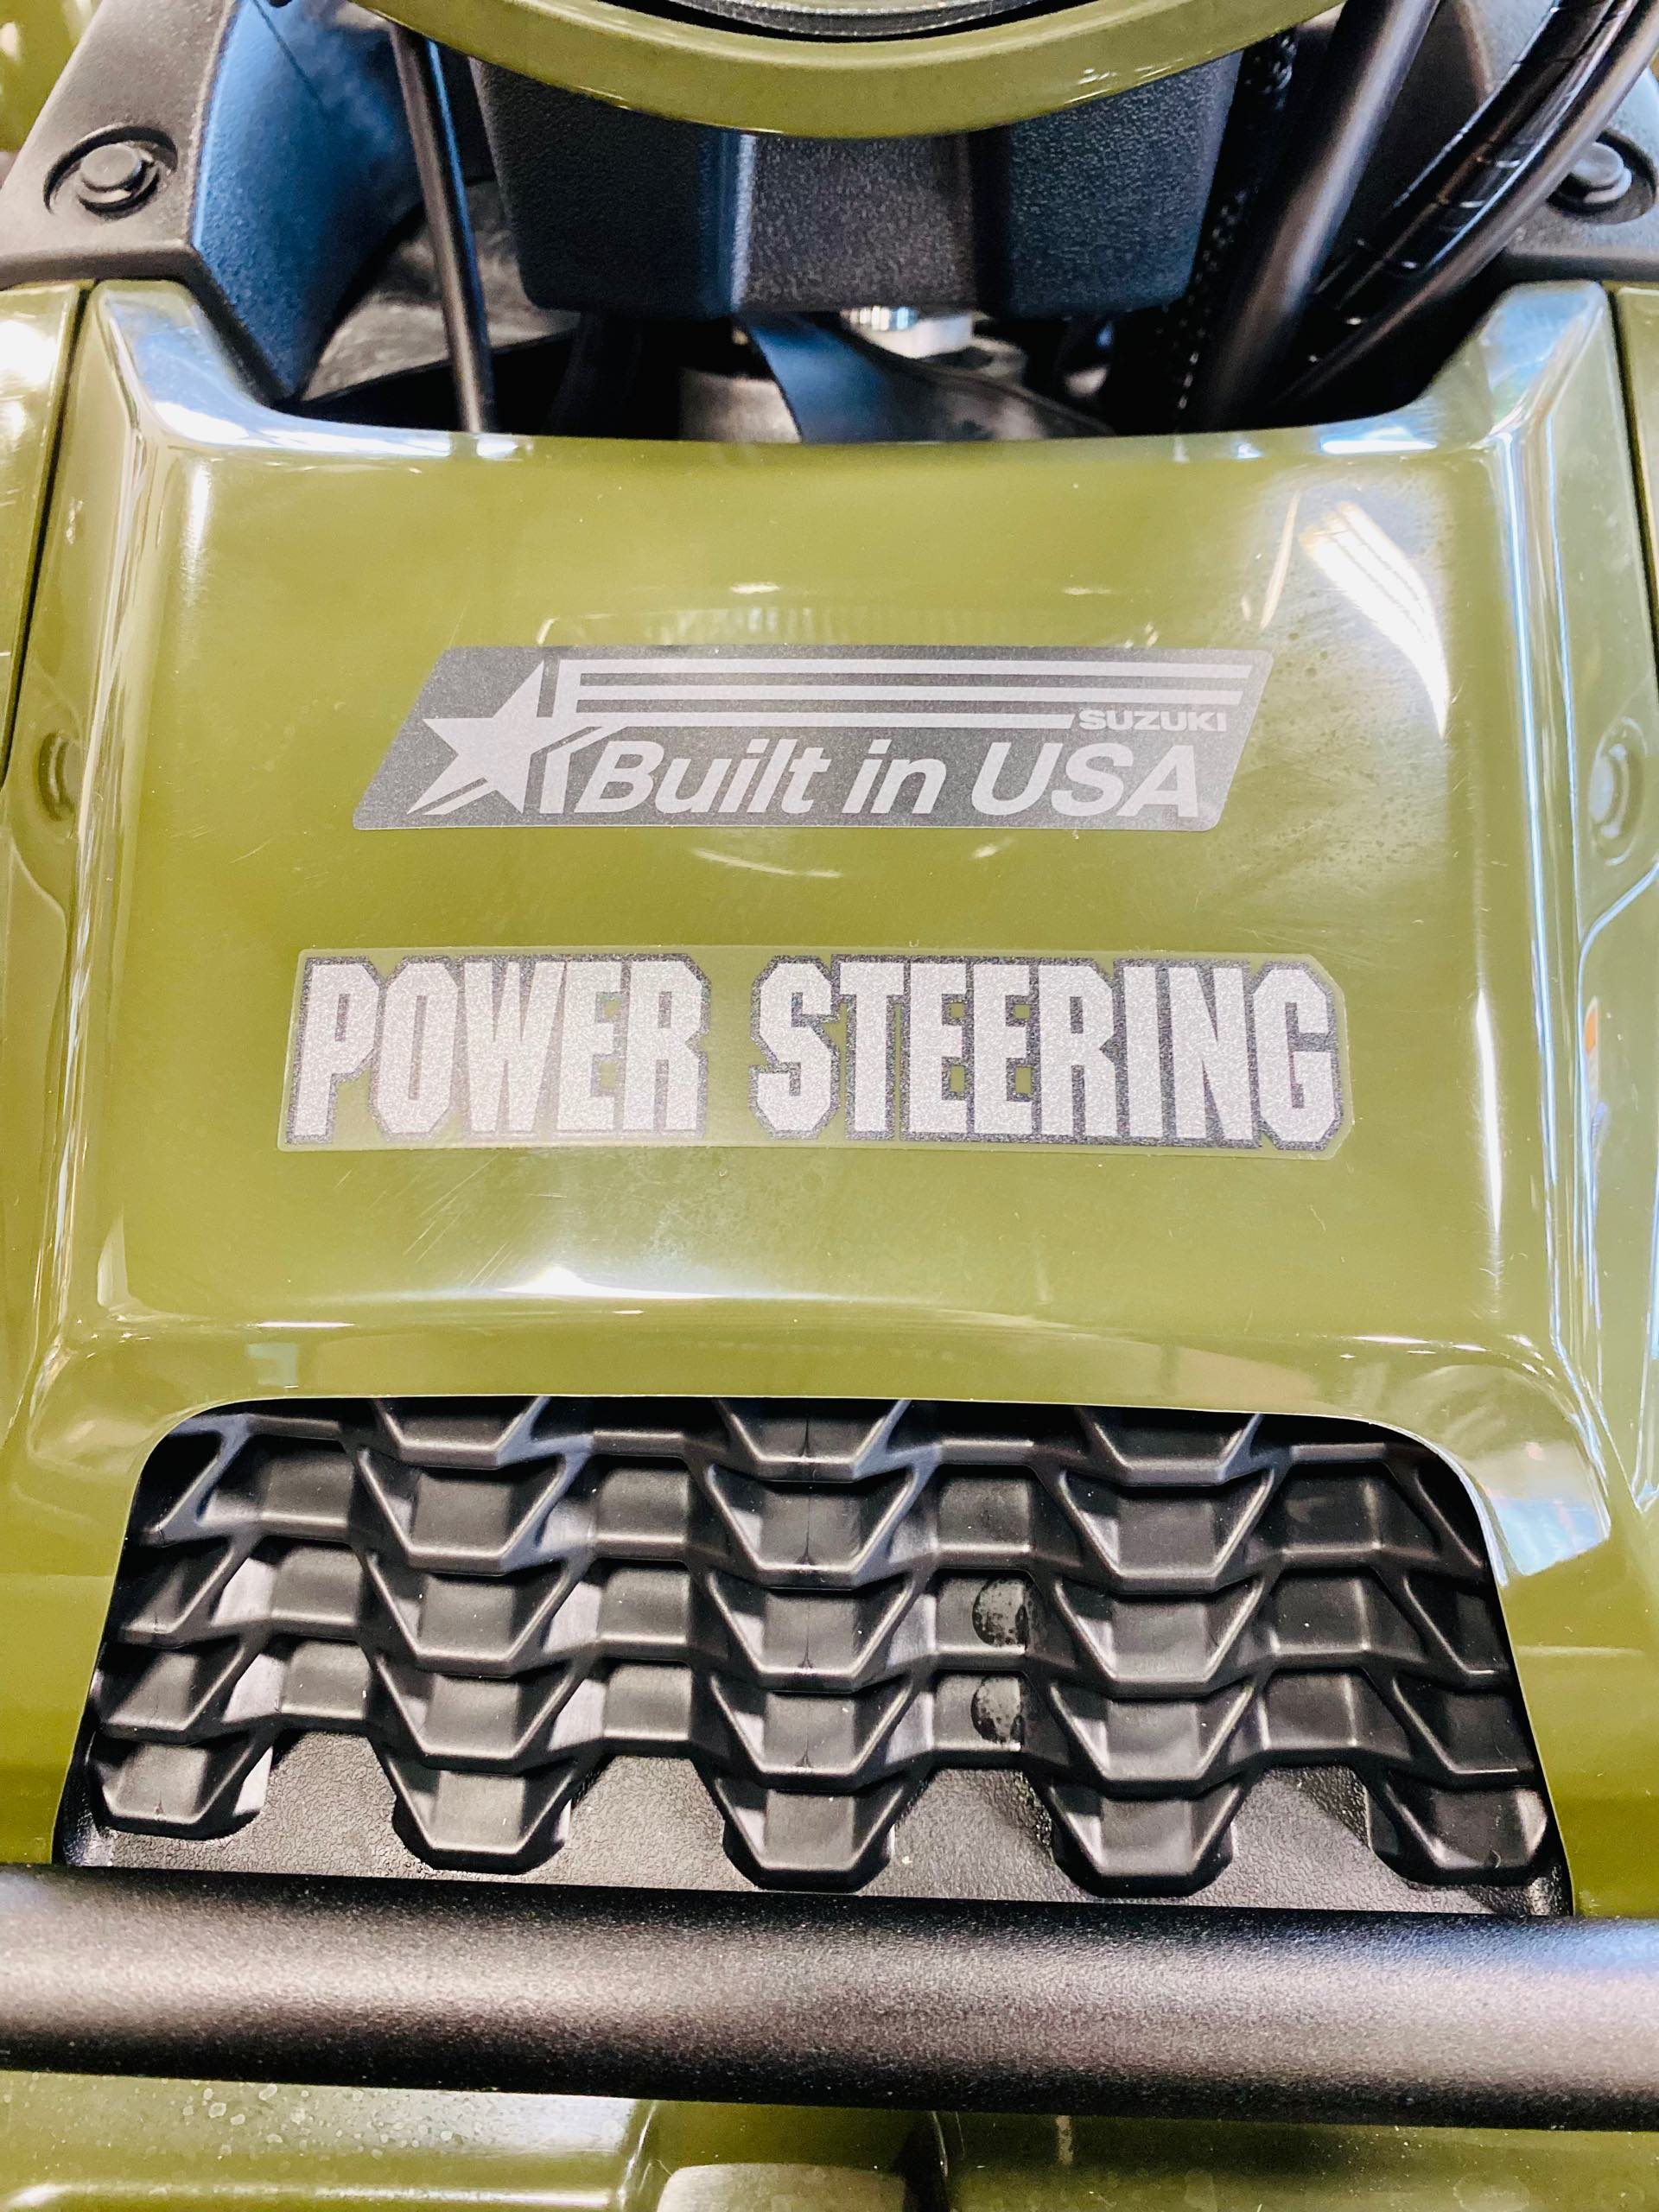 2022 Suzuki KingQuad 750 AXi Power Steering at Rod's Ride On Powersports